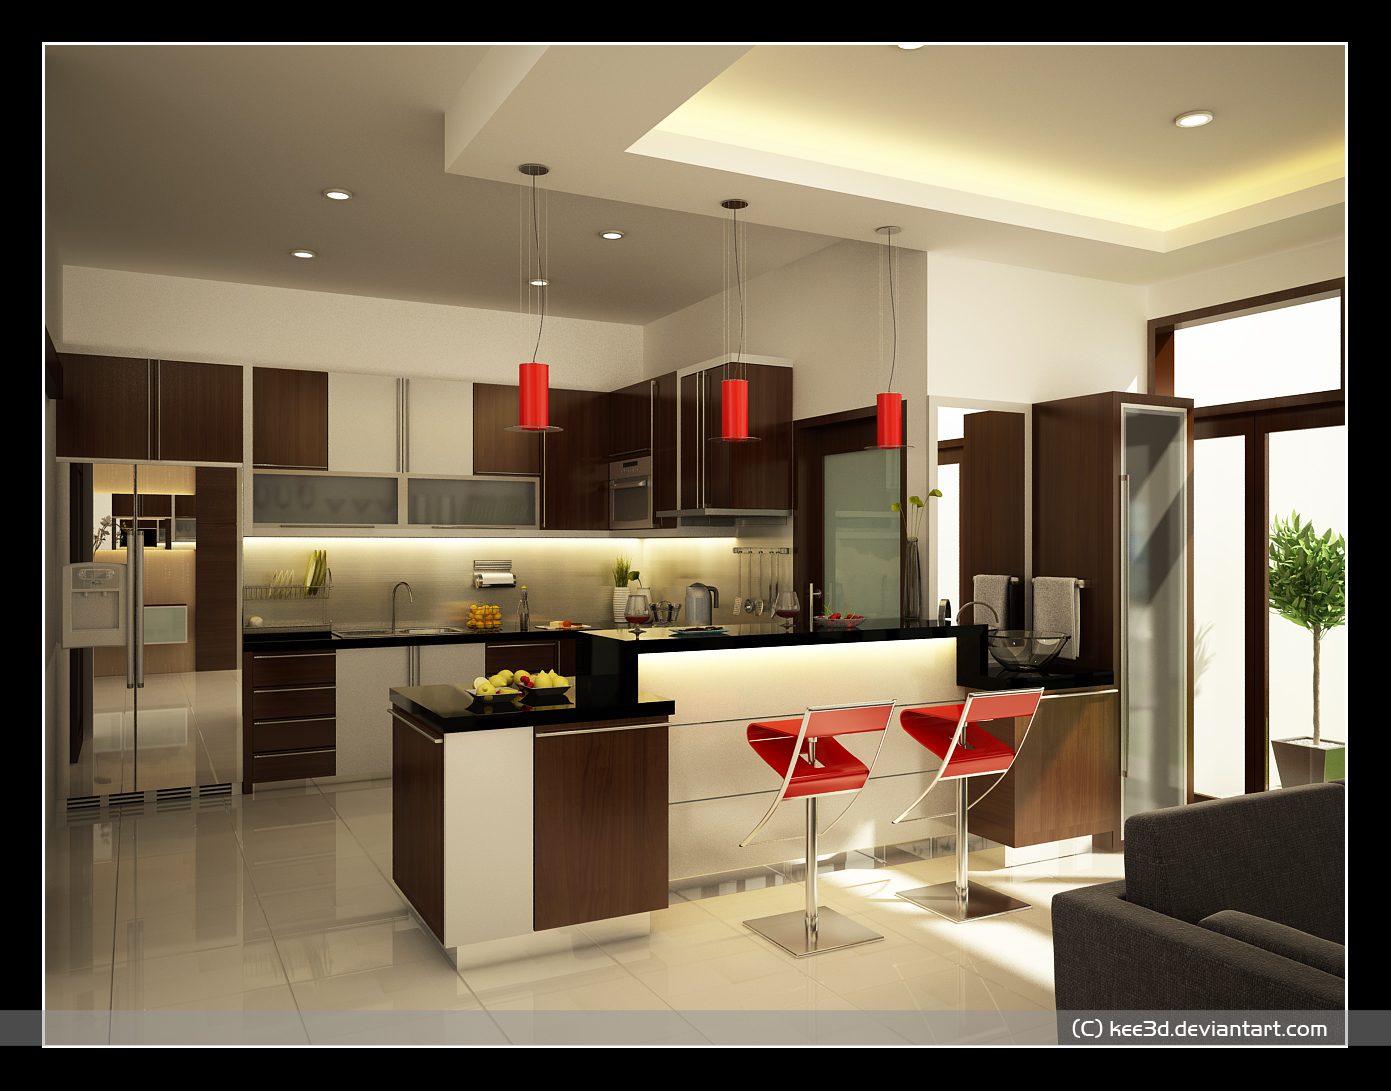 kitchen designing tips kitchen design ideas 945